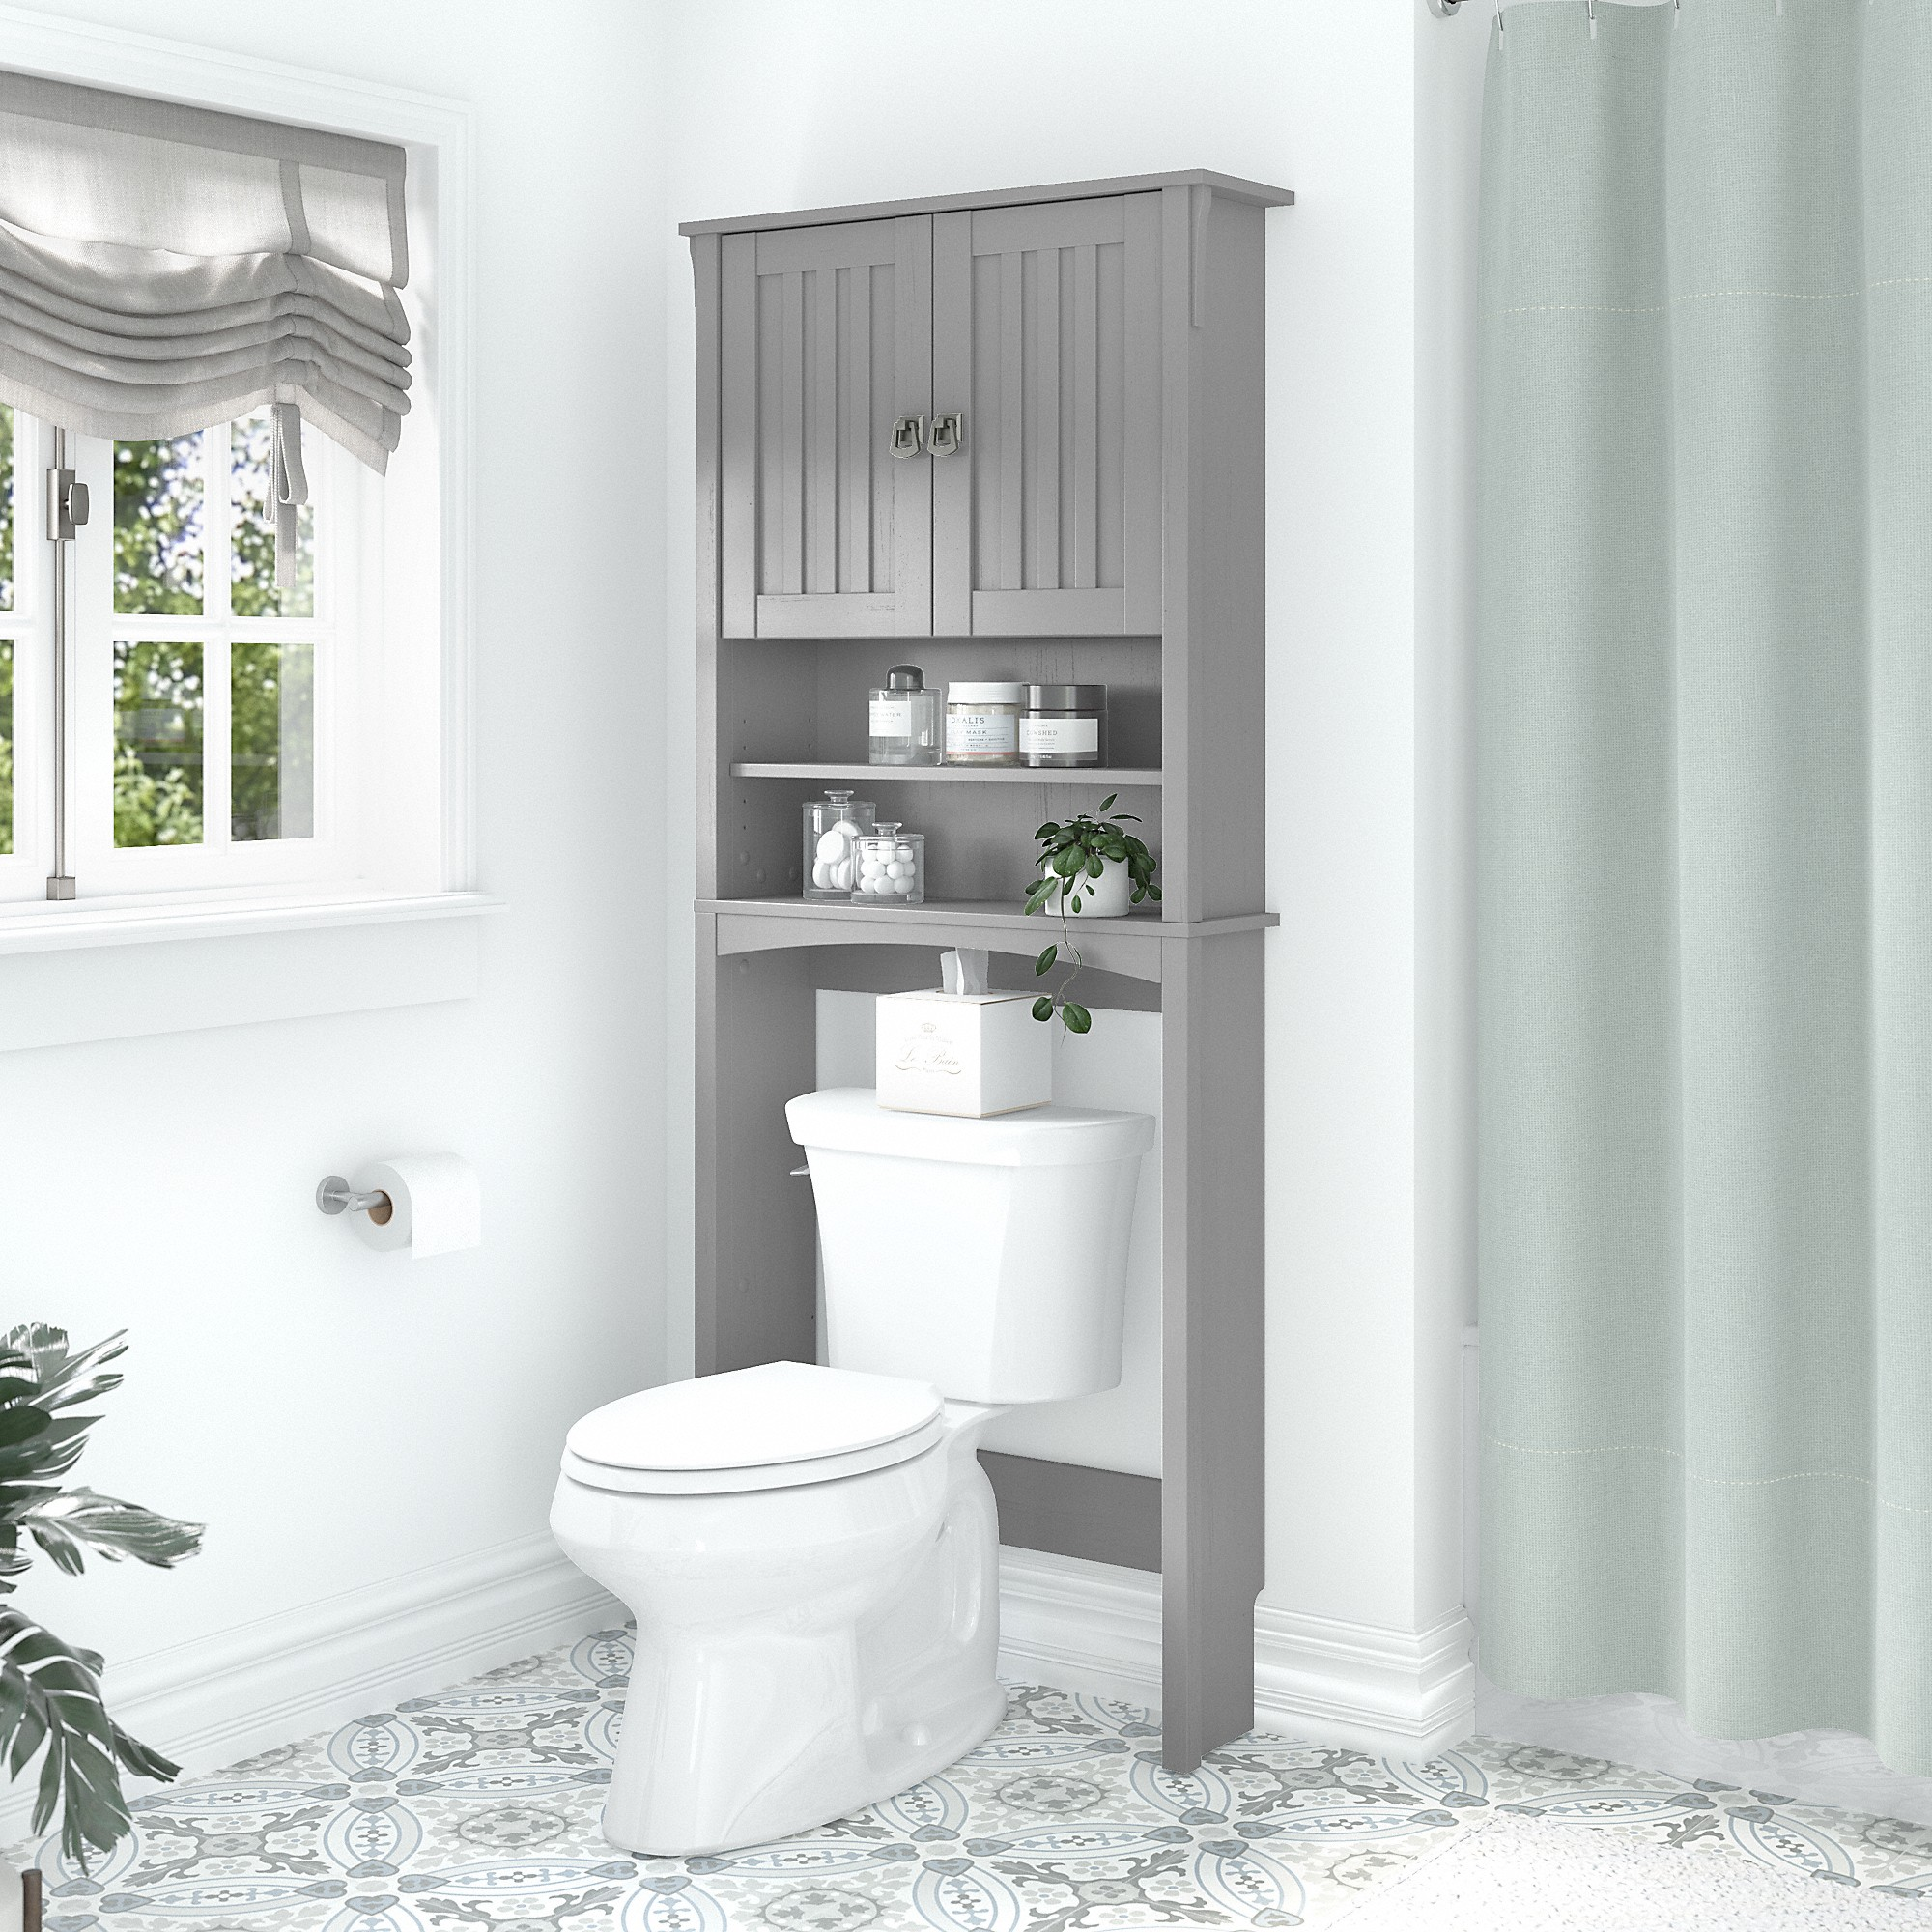 The Toilet Storage Cabinet, White Over The Toilet Cabinet With Towel Bar